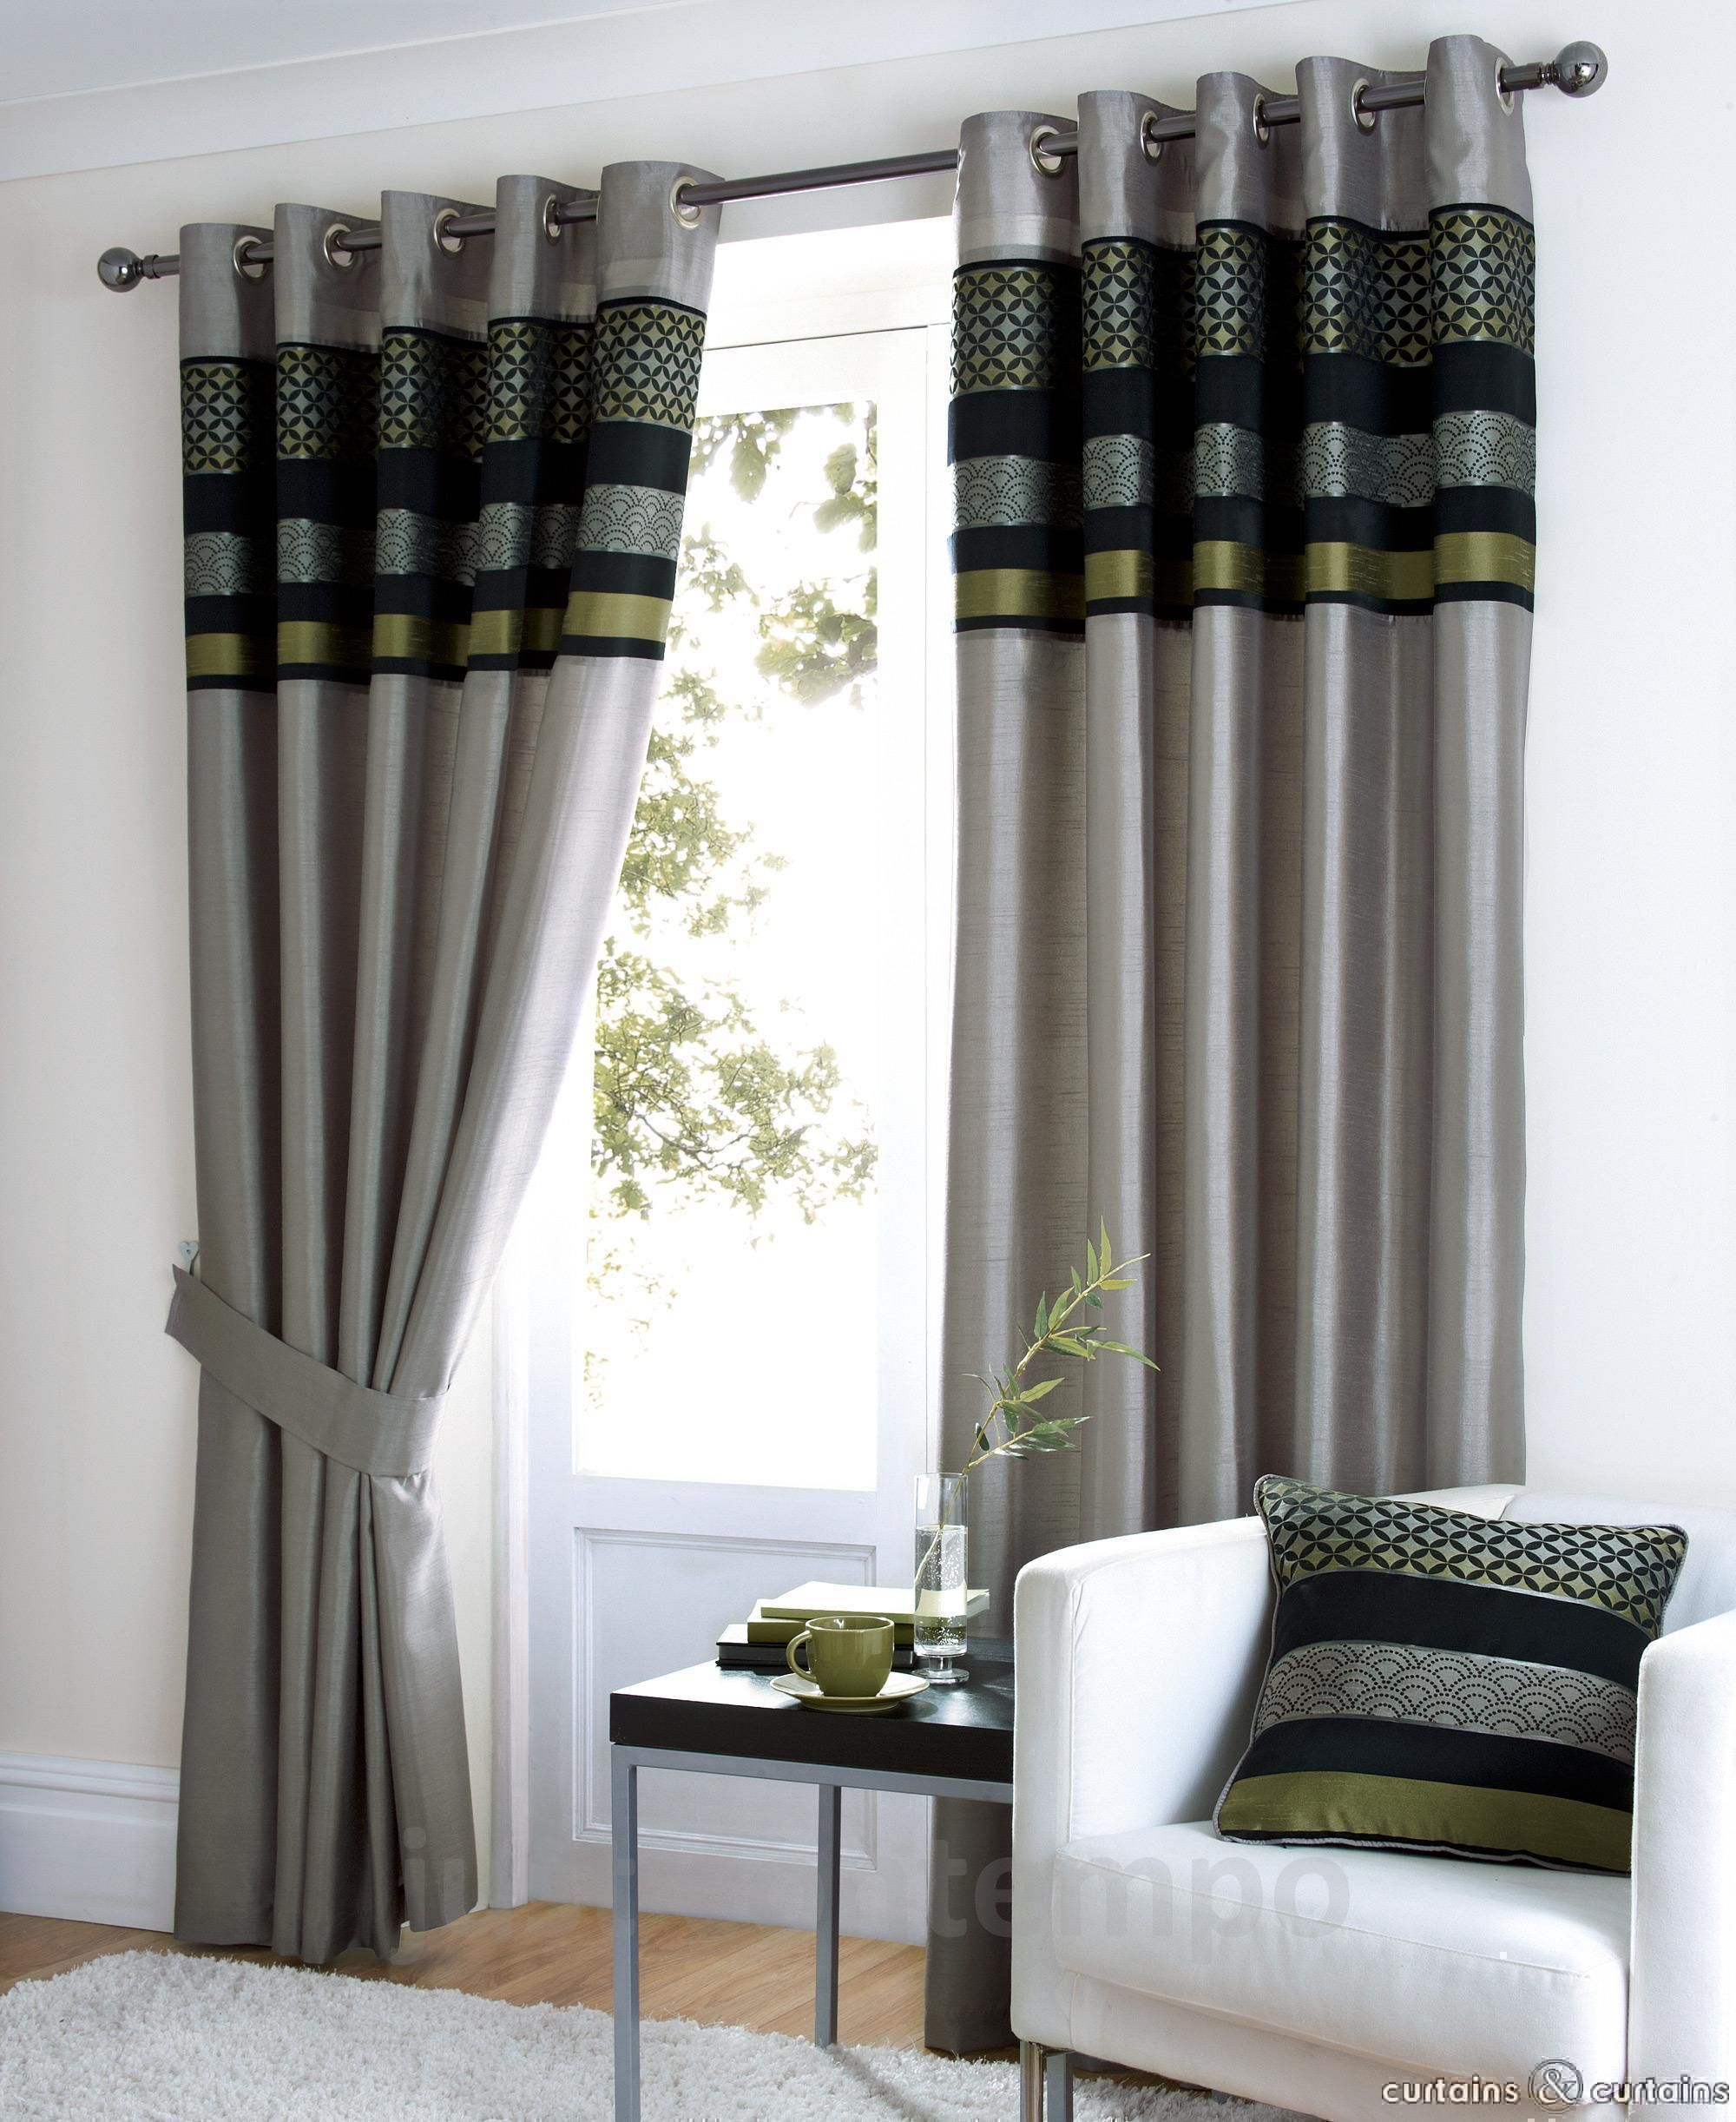 Saturn Black Silver Green Luxury Eyelet Curtain Home